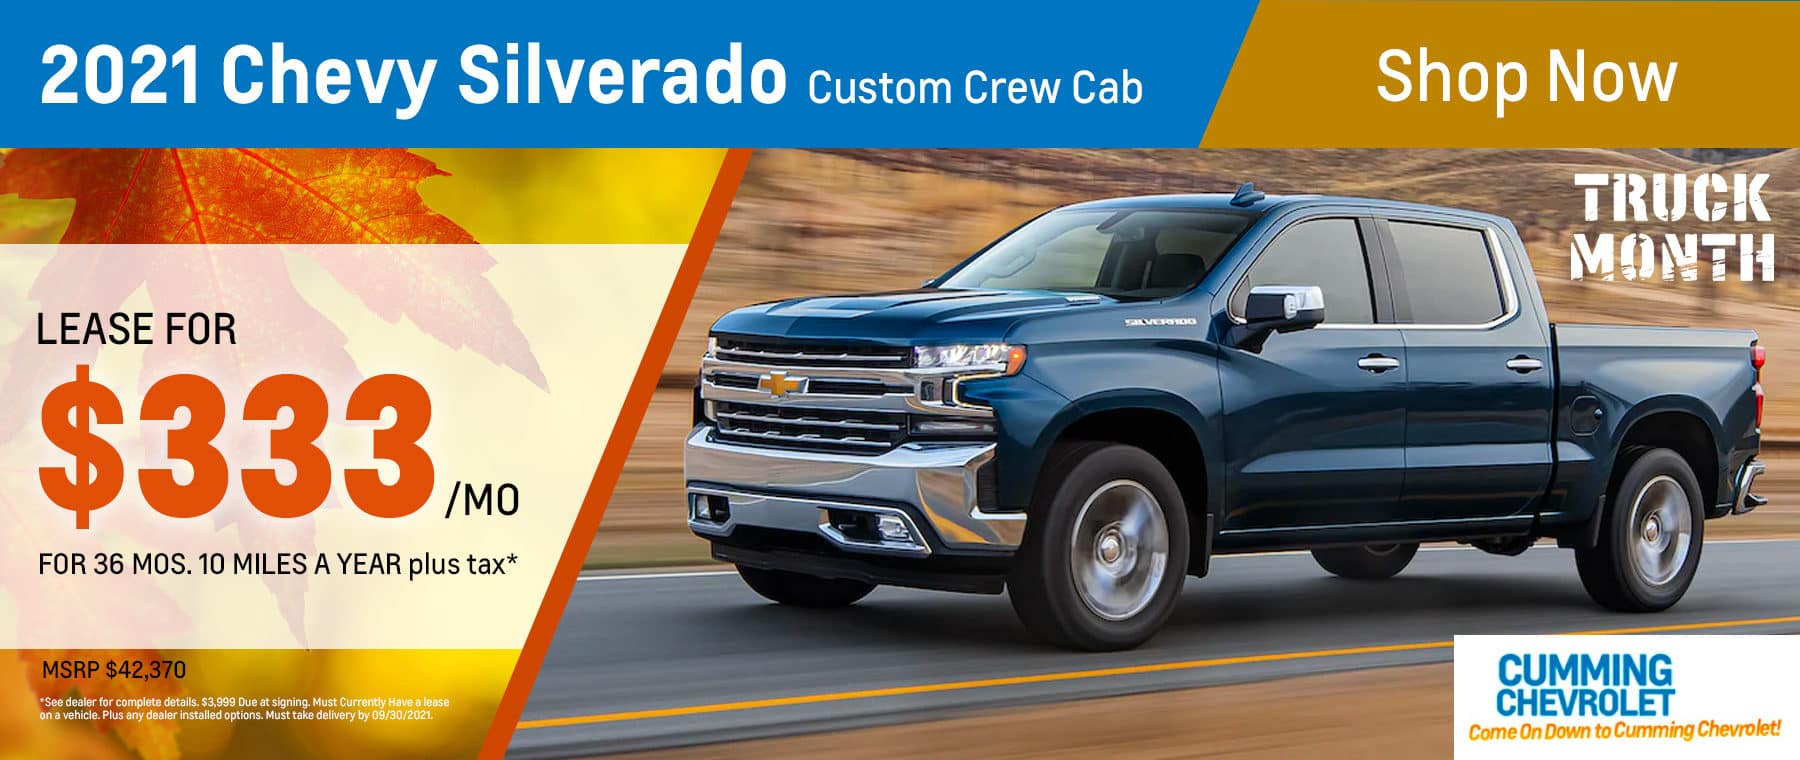 New Chevrolet Silverado Models. Contact Us for Vehicles in Stock! (619) 677-6363